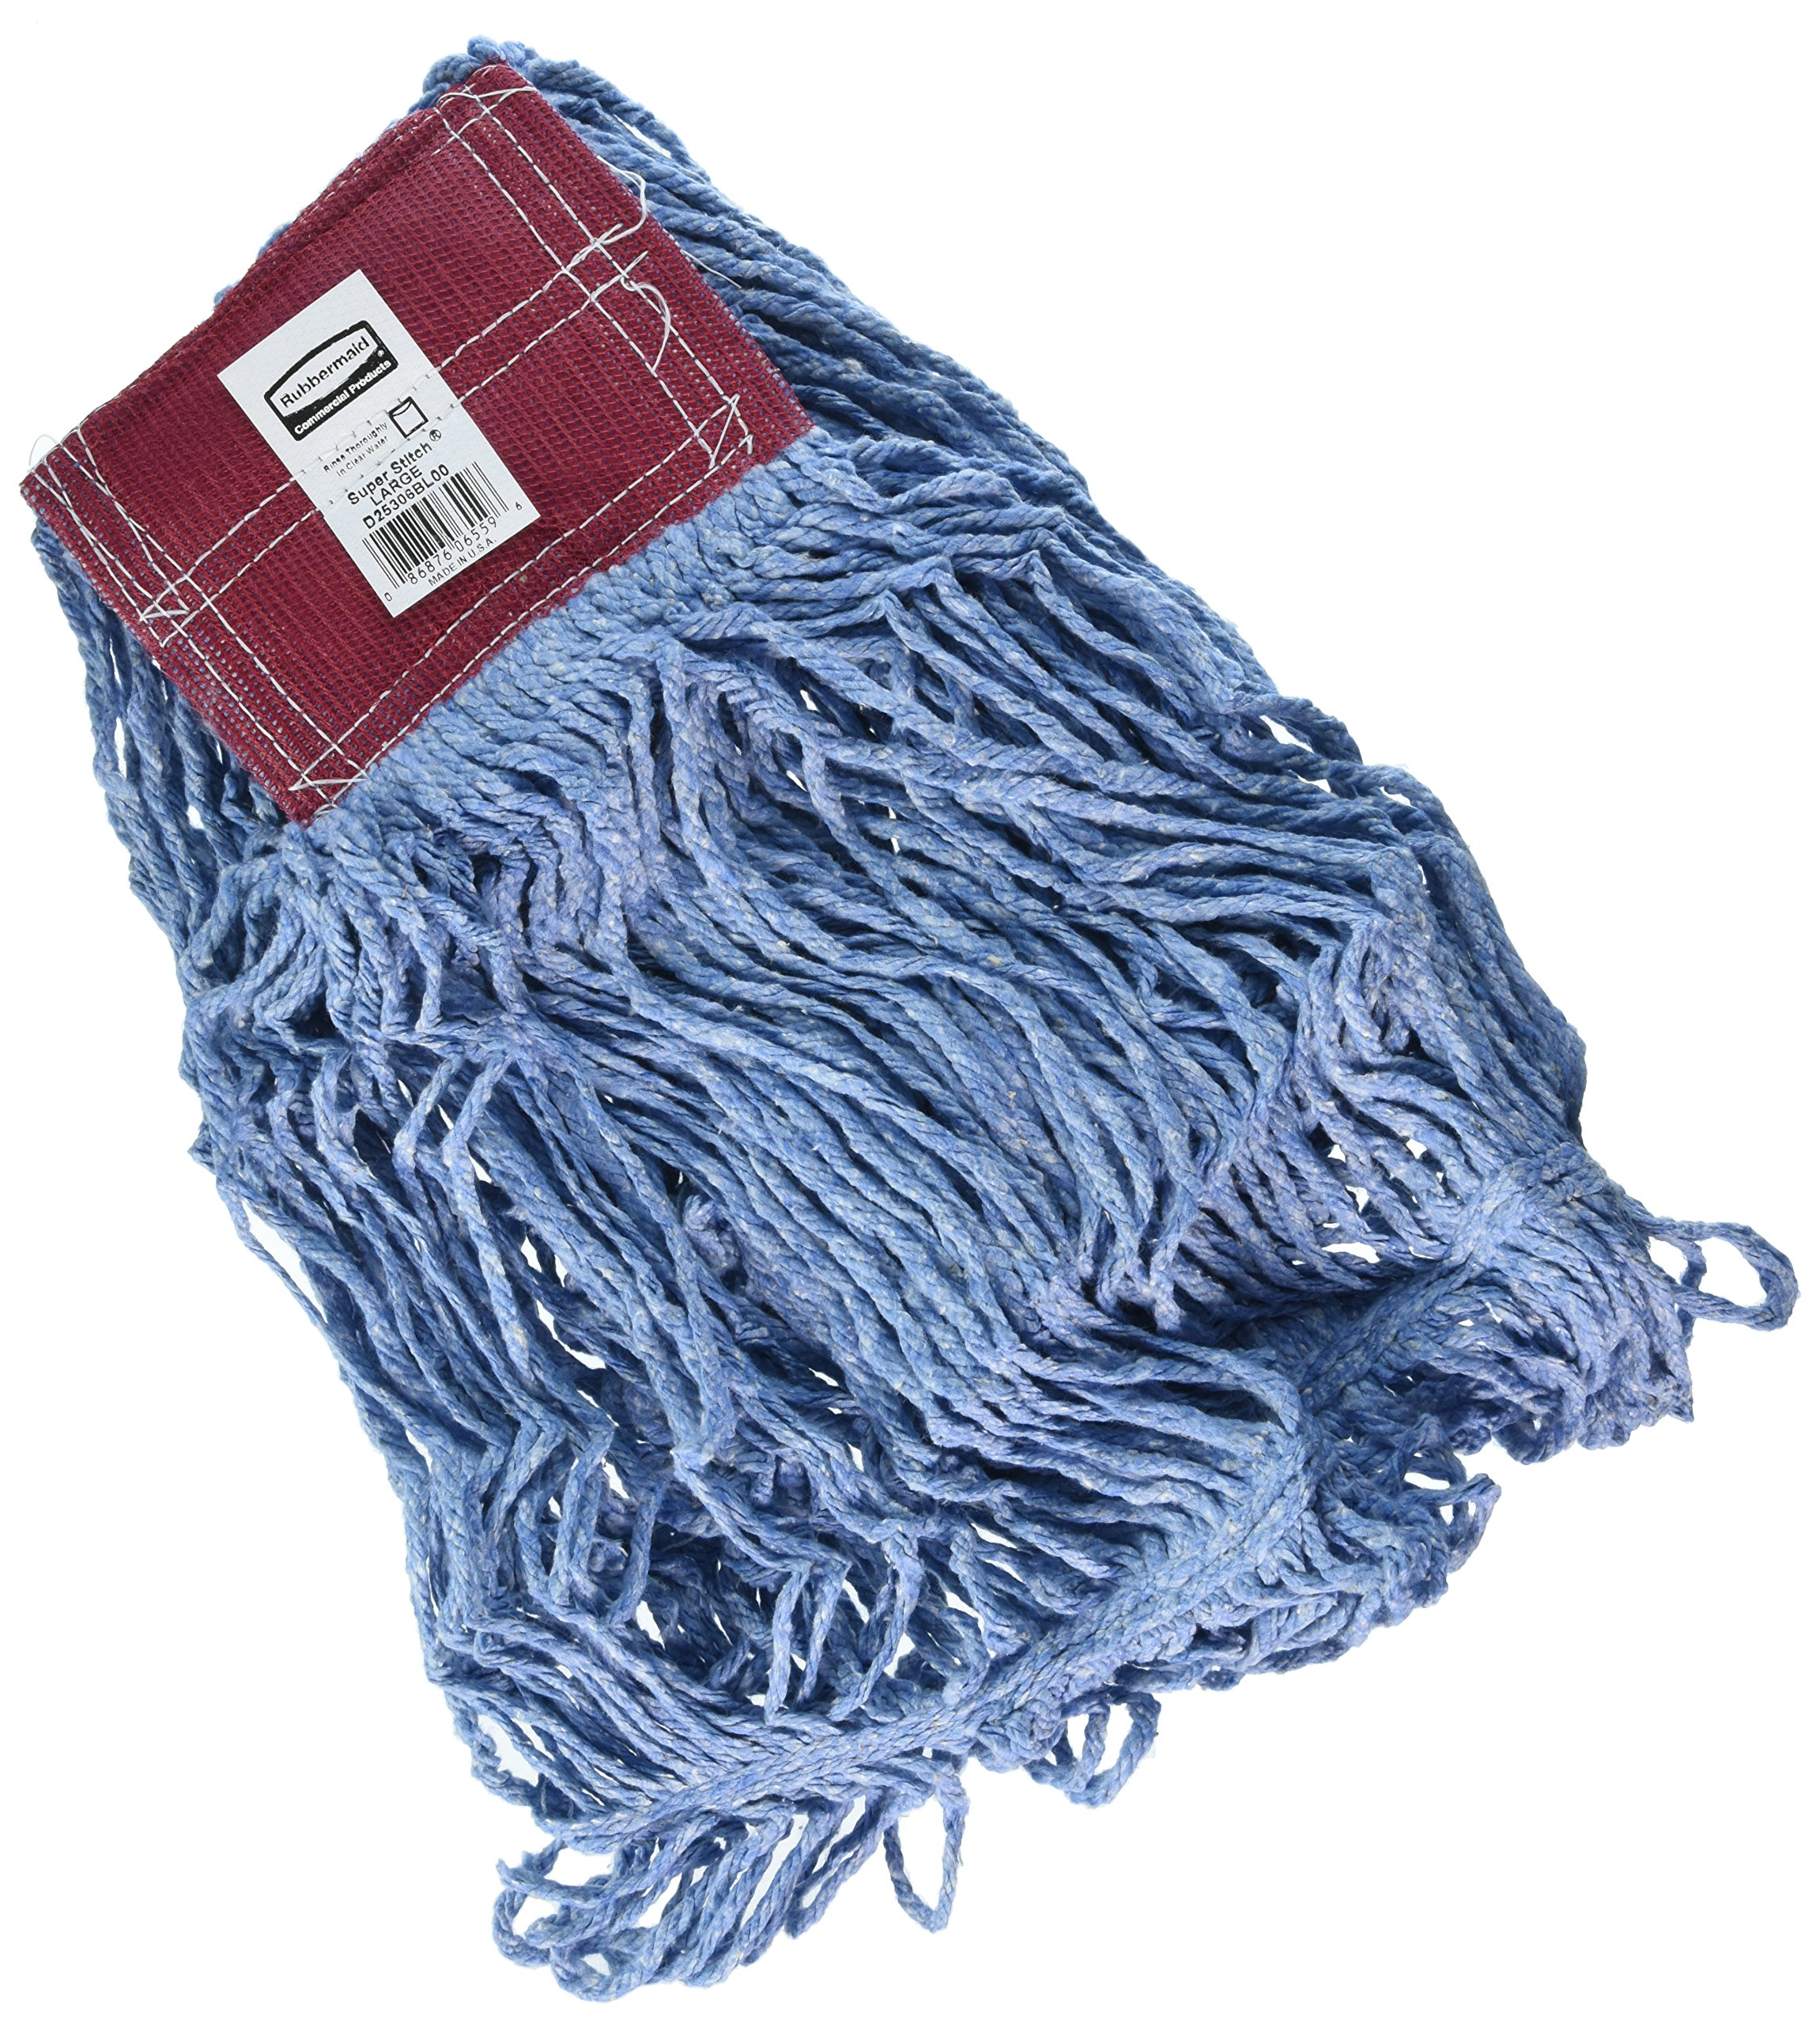 Rubbermaid Commercial Products FGD25306BL00 Super Stich Blend Mop, Large, 5'' Blue Headband (Pack of 6) by Rubbermaid Commercial Products